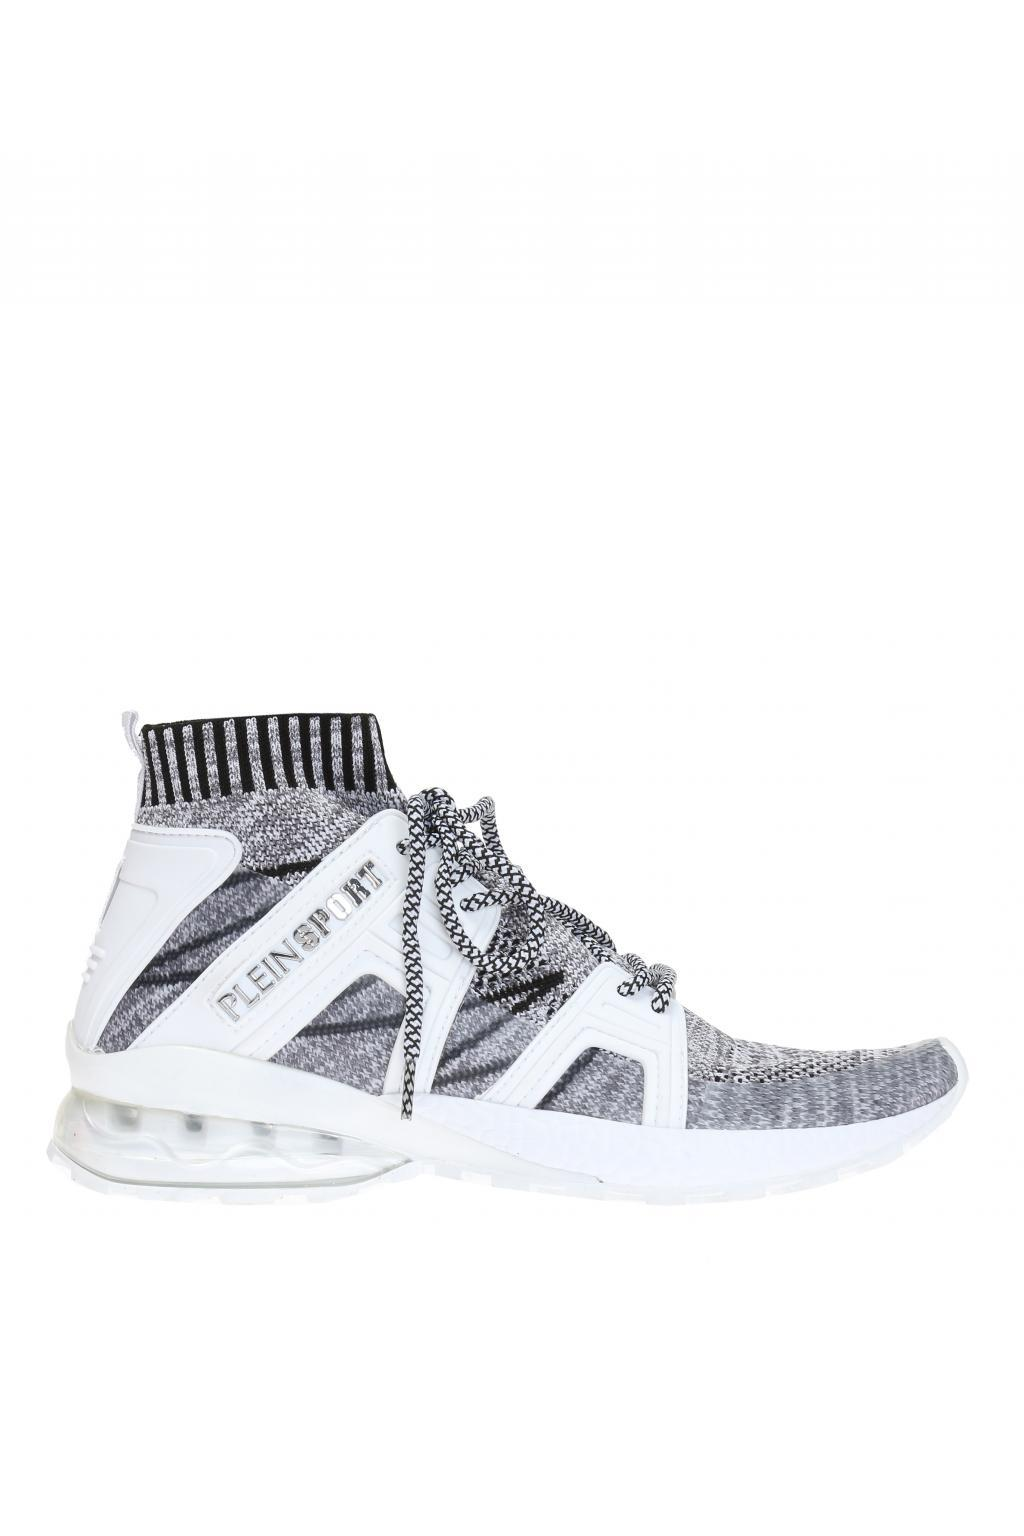 "Philipp Plein Runner ""The end"""